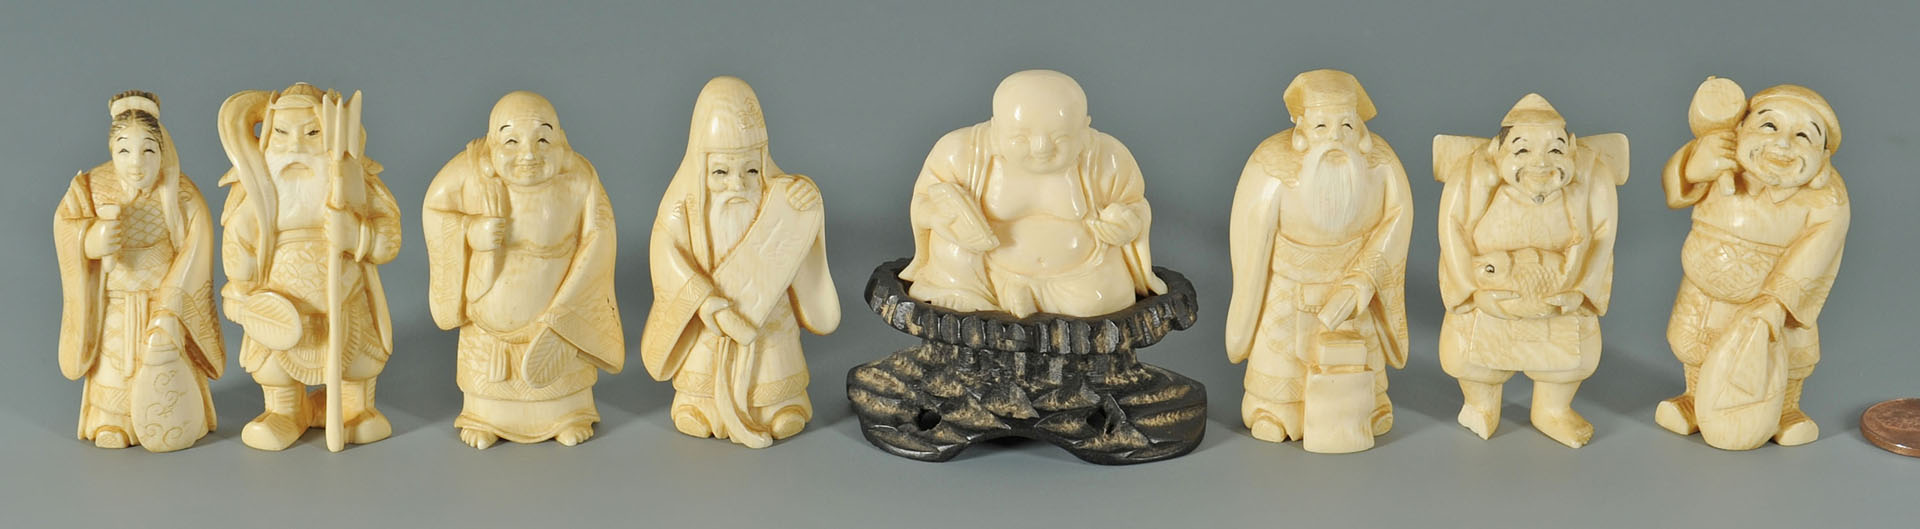 8 Chinese Carved Ivory Figures